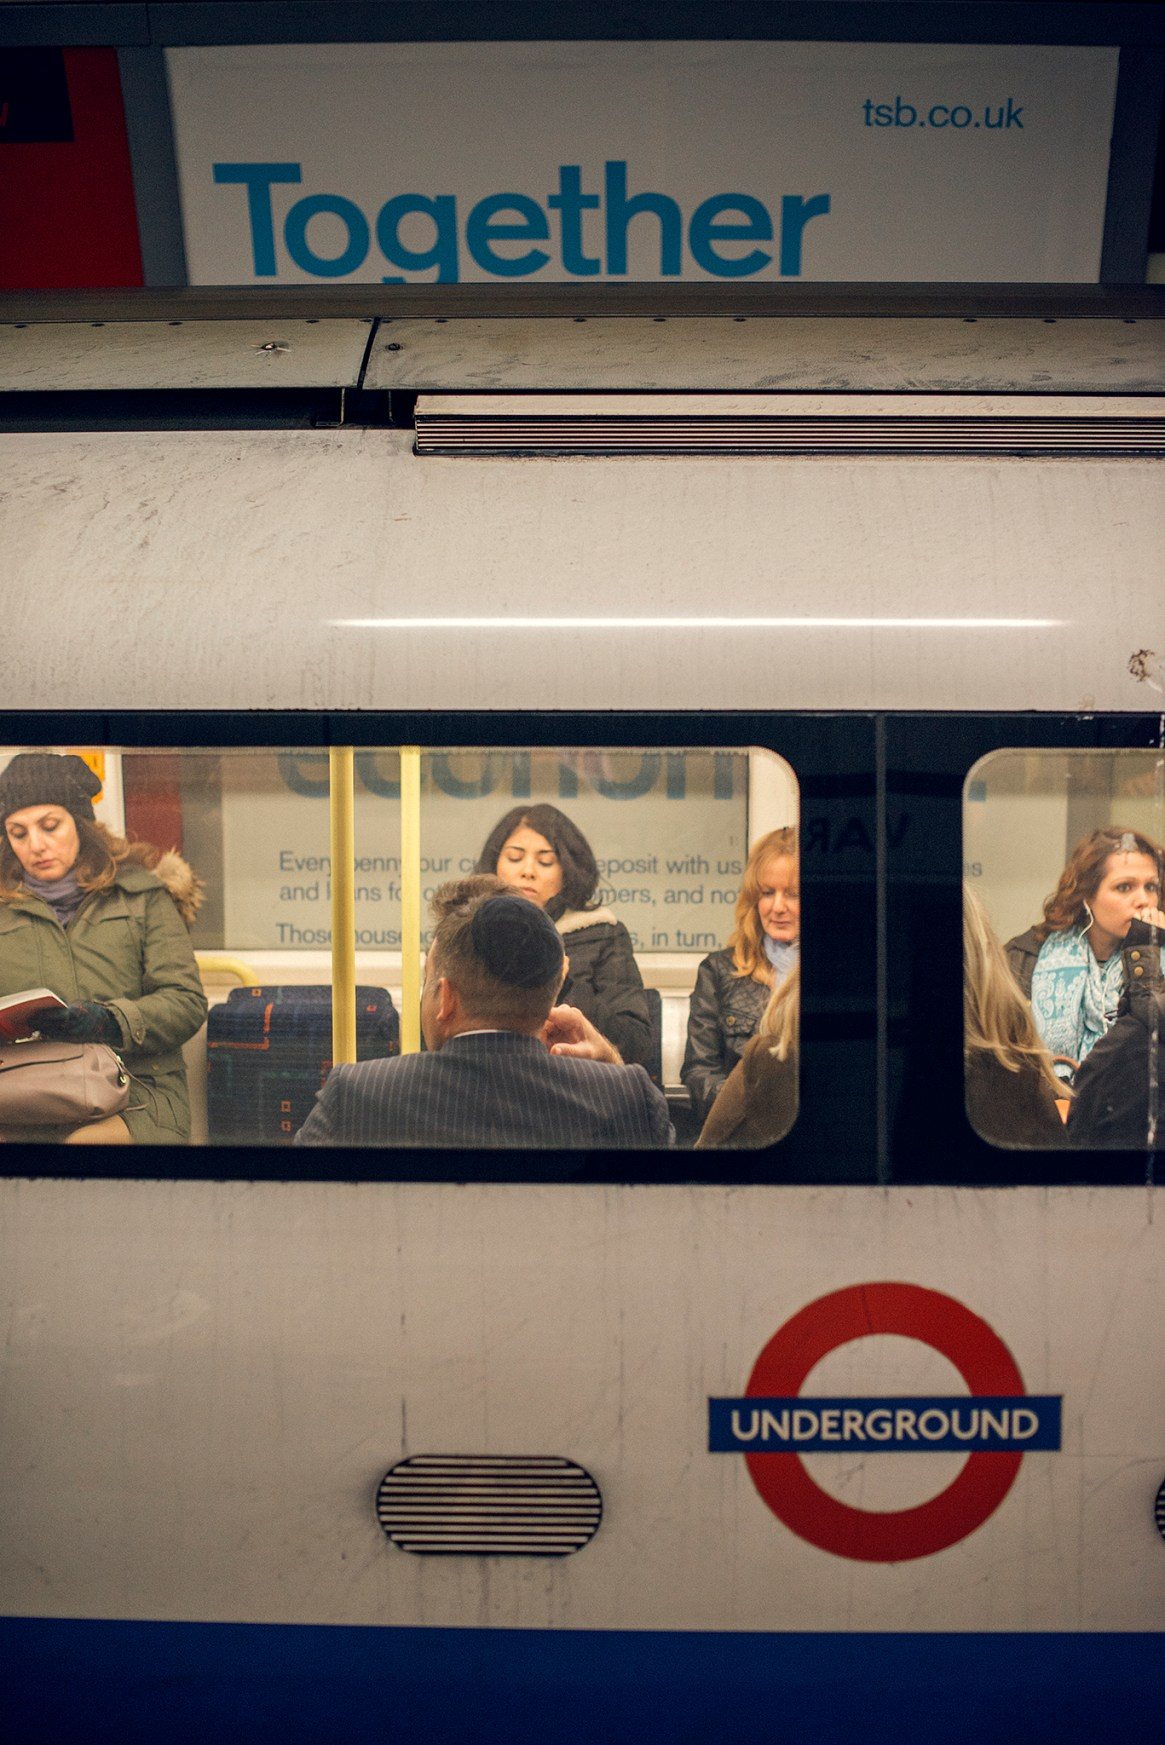 "Tightly framed portrait-orientation shot of a tube carriage showing the London Underground logo, parked in front of a giant poster reading ""Together"", with seated commuters visible through the carriage windows."